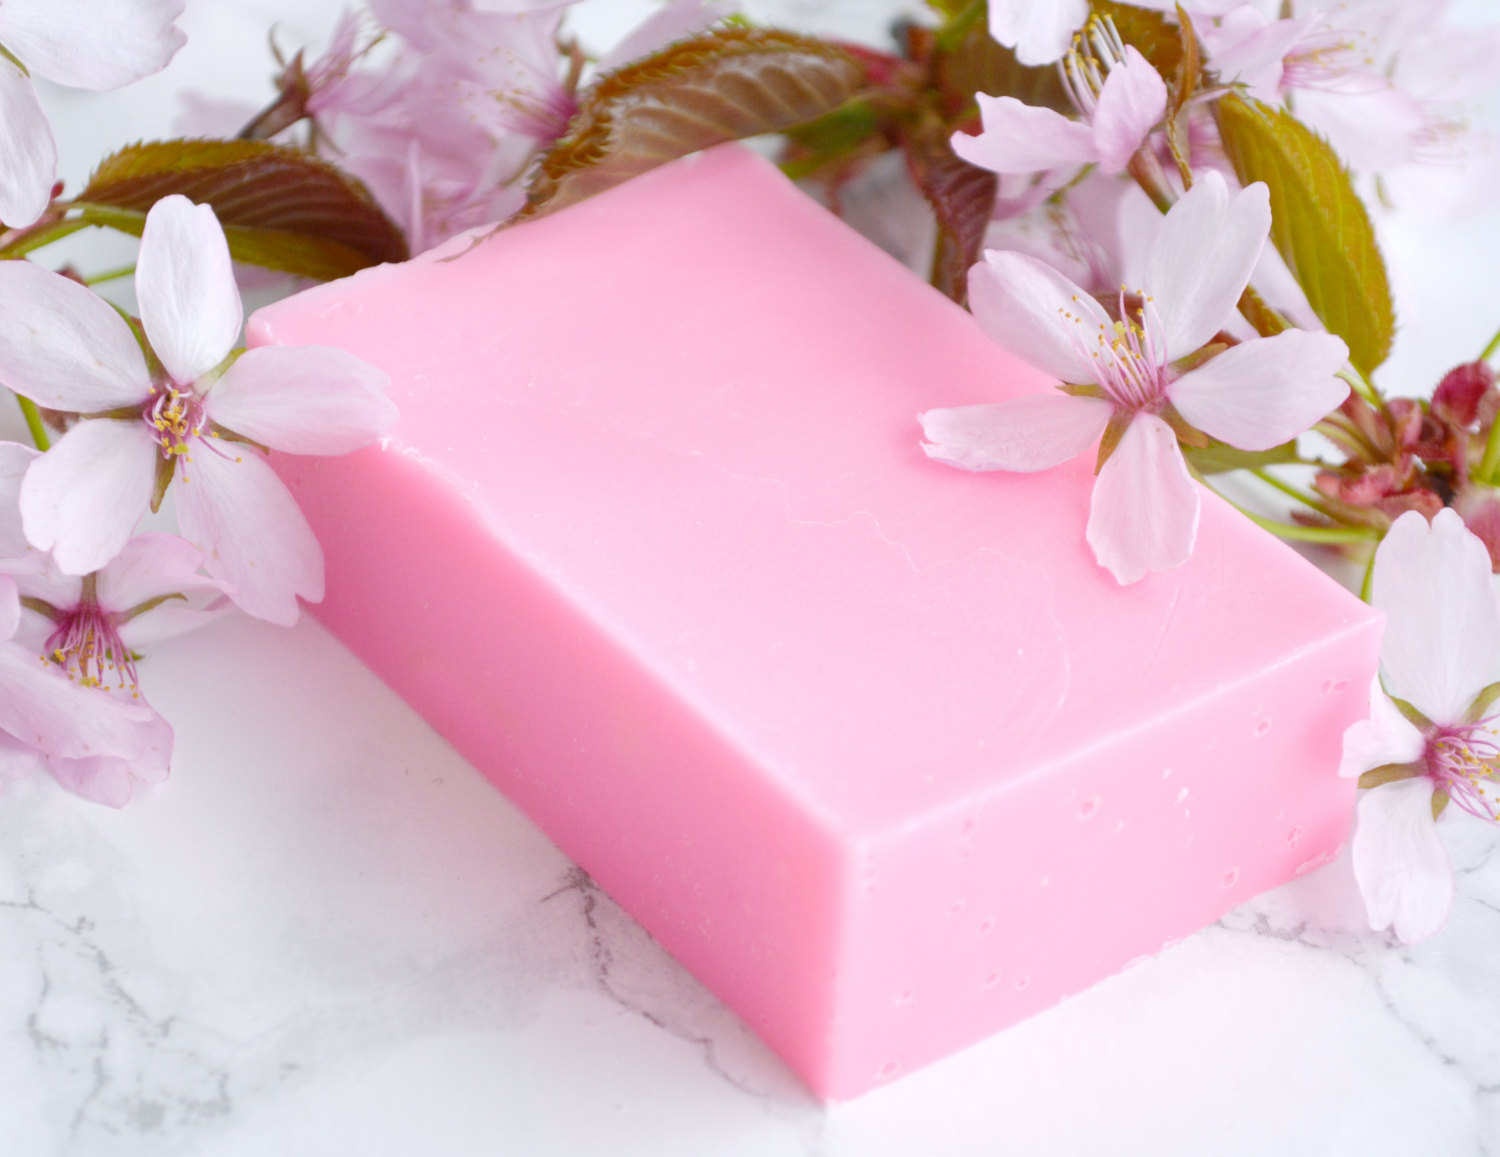 Cherry Blossom Soap by Tailored Soap